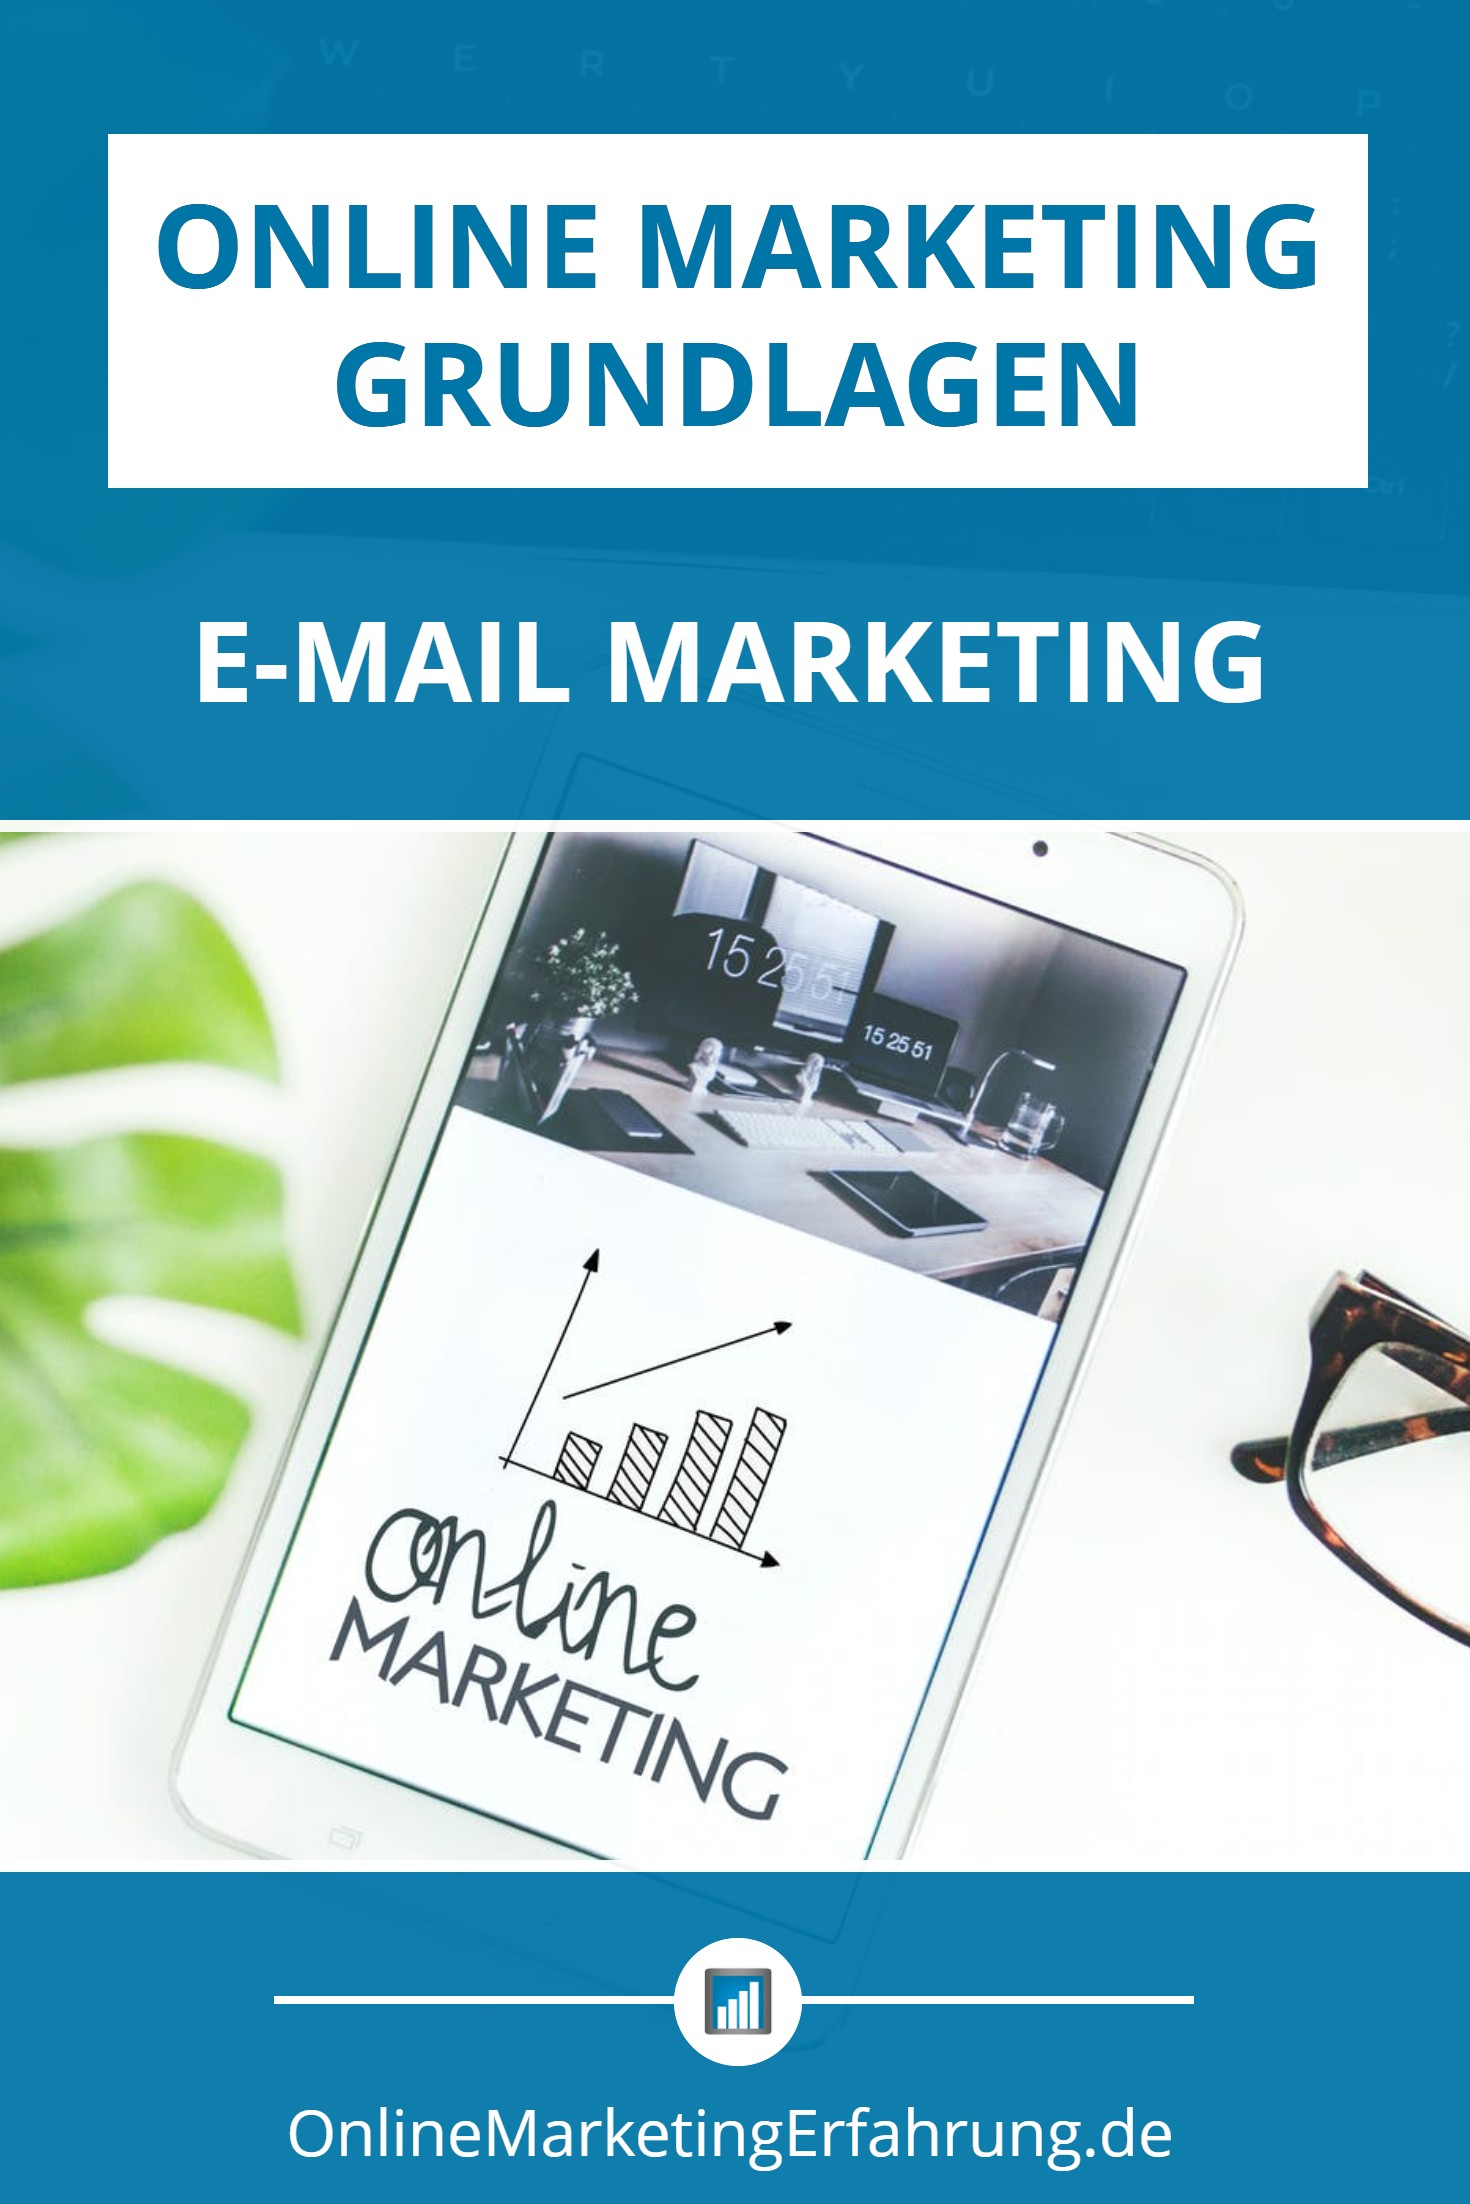 E-Mail Marketing Grundlagen